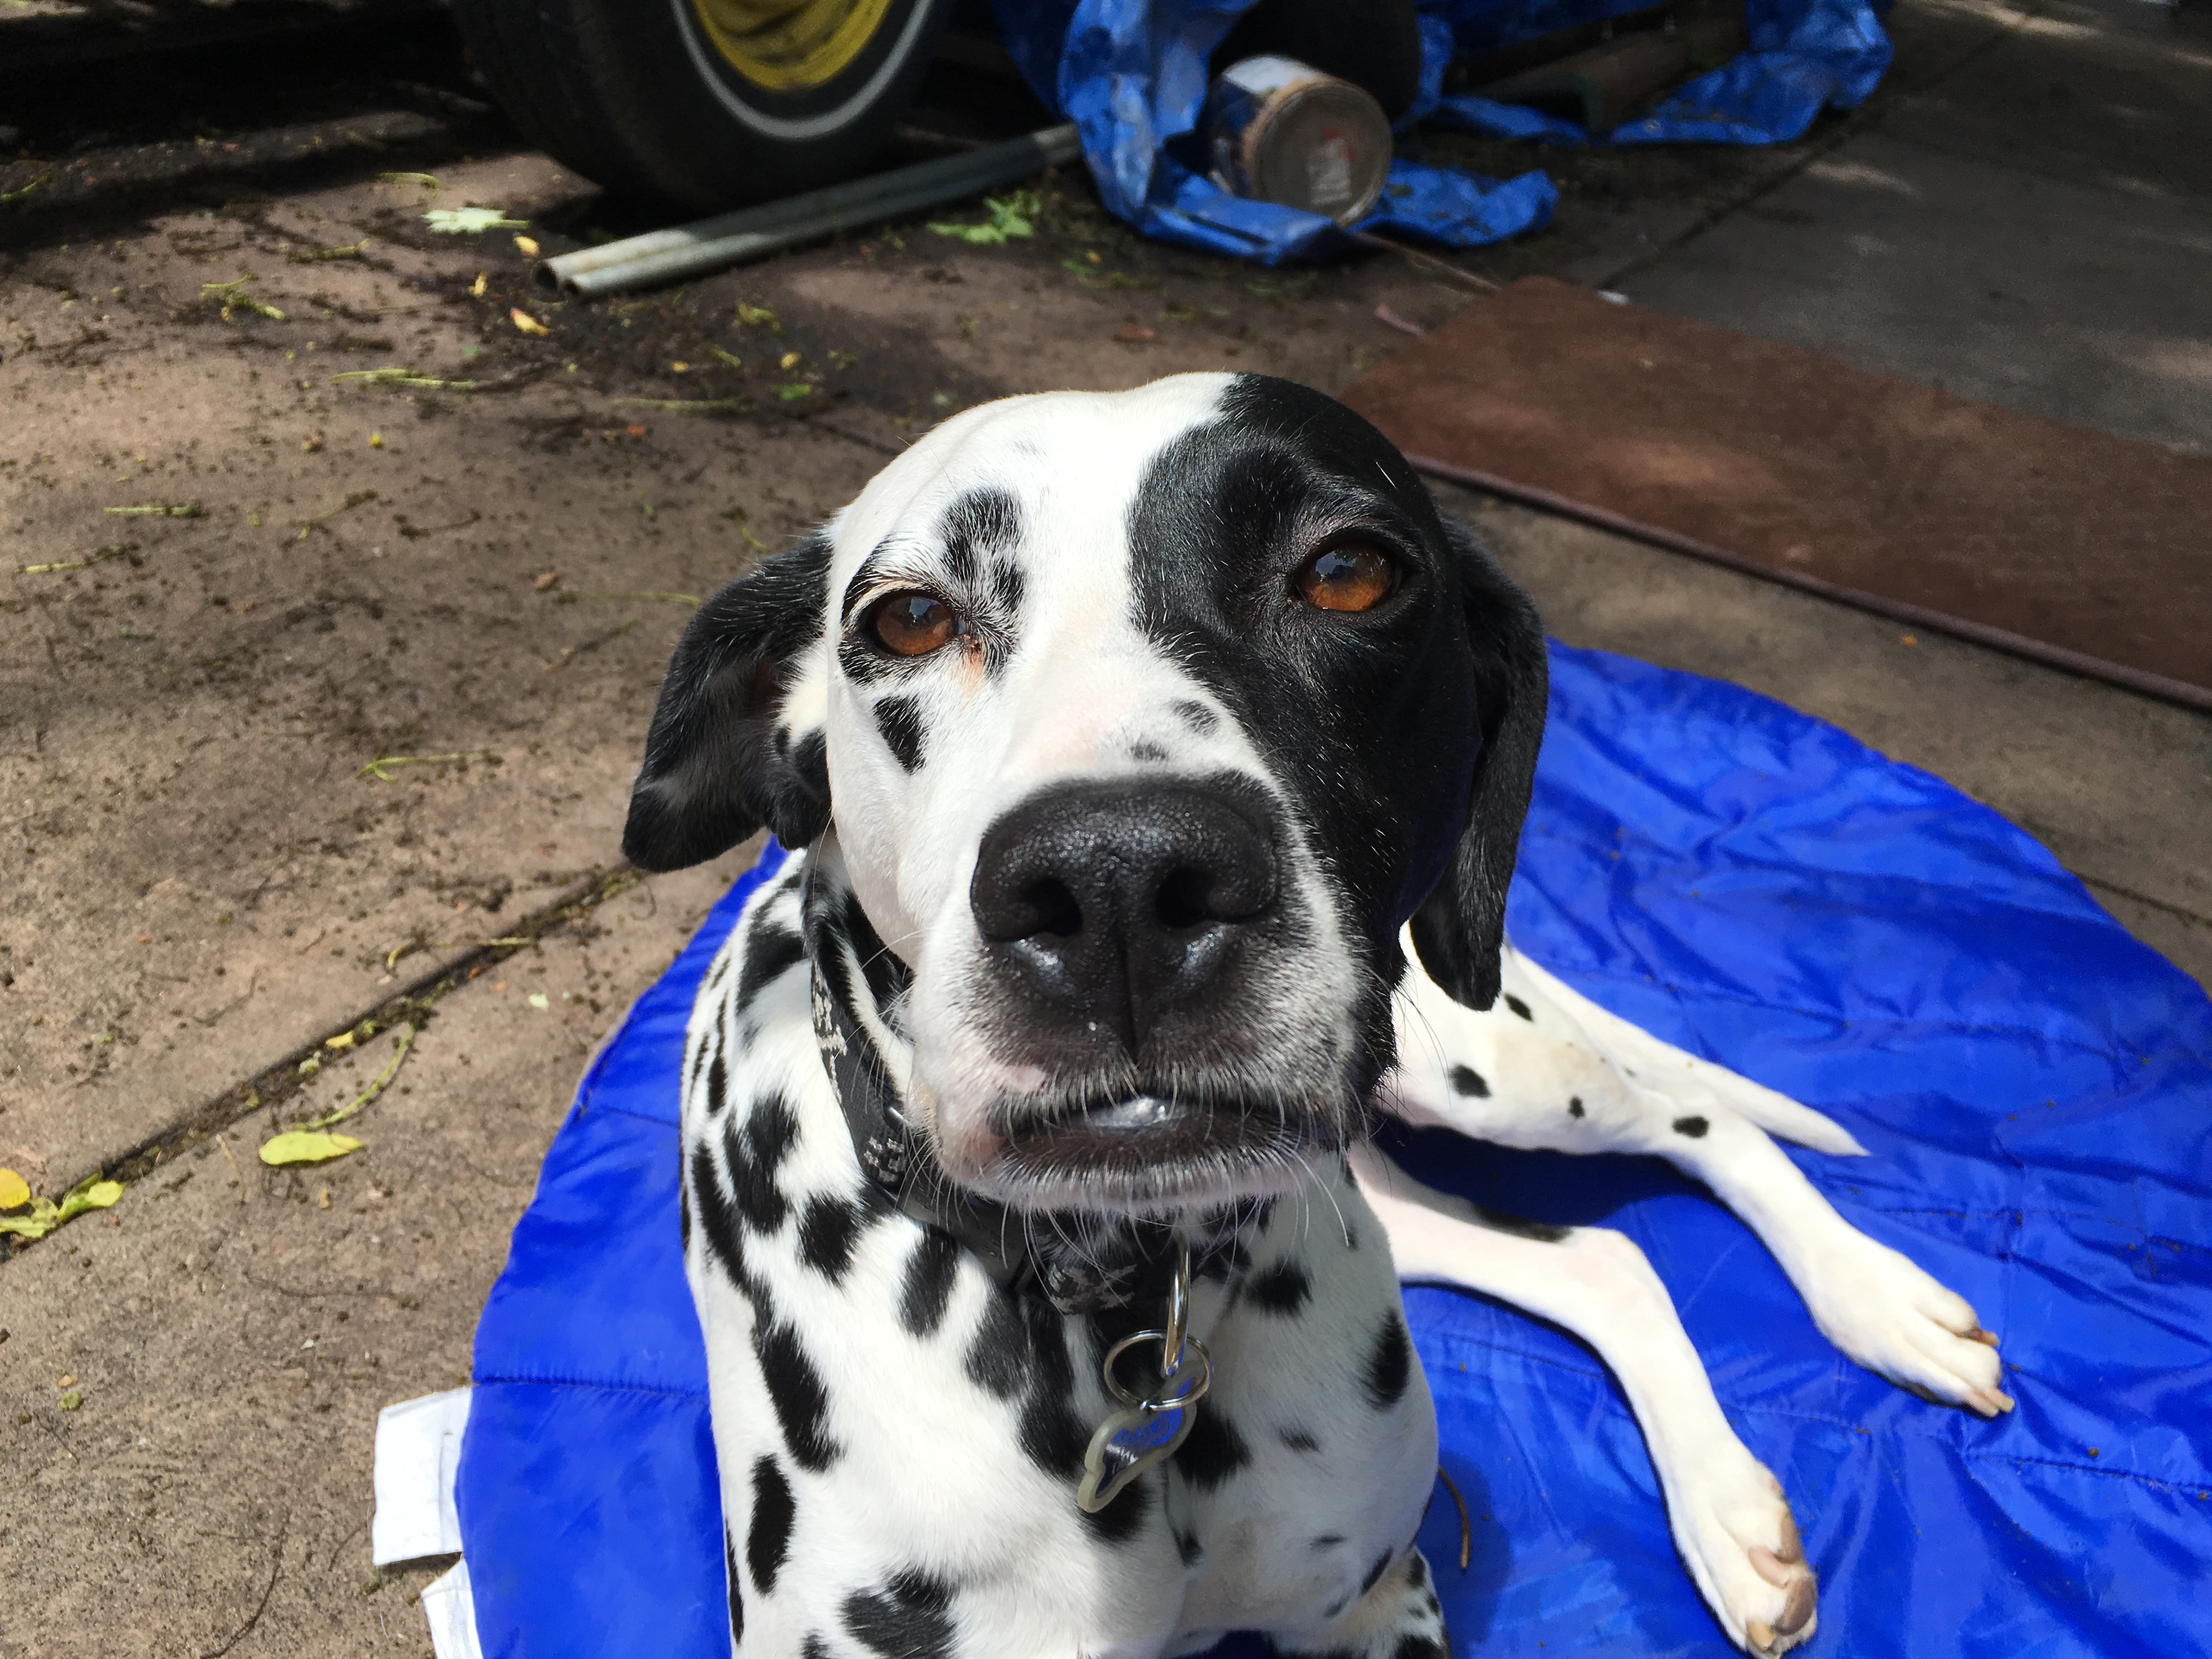 Watch How to Identify a Dalmatian video